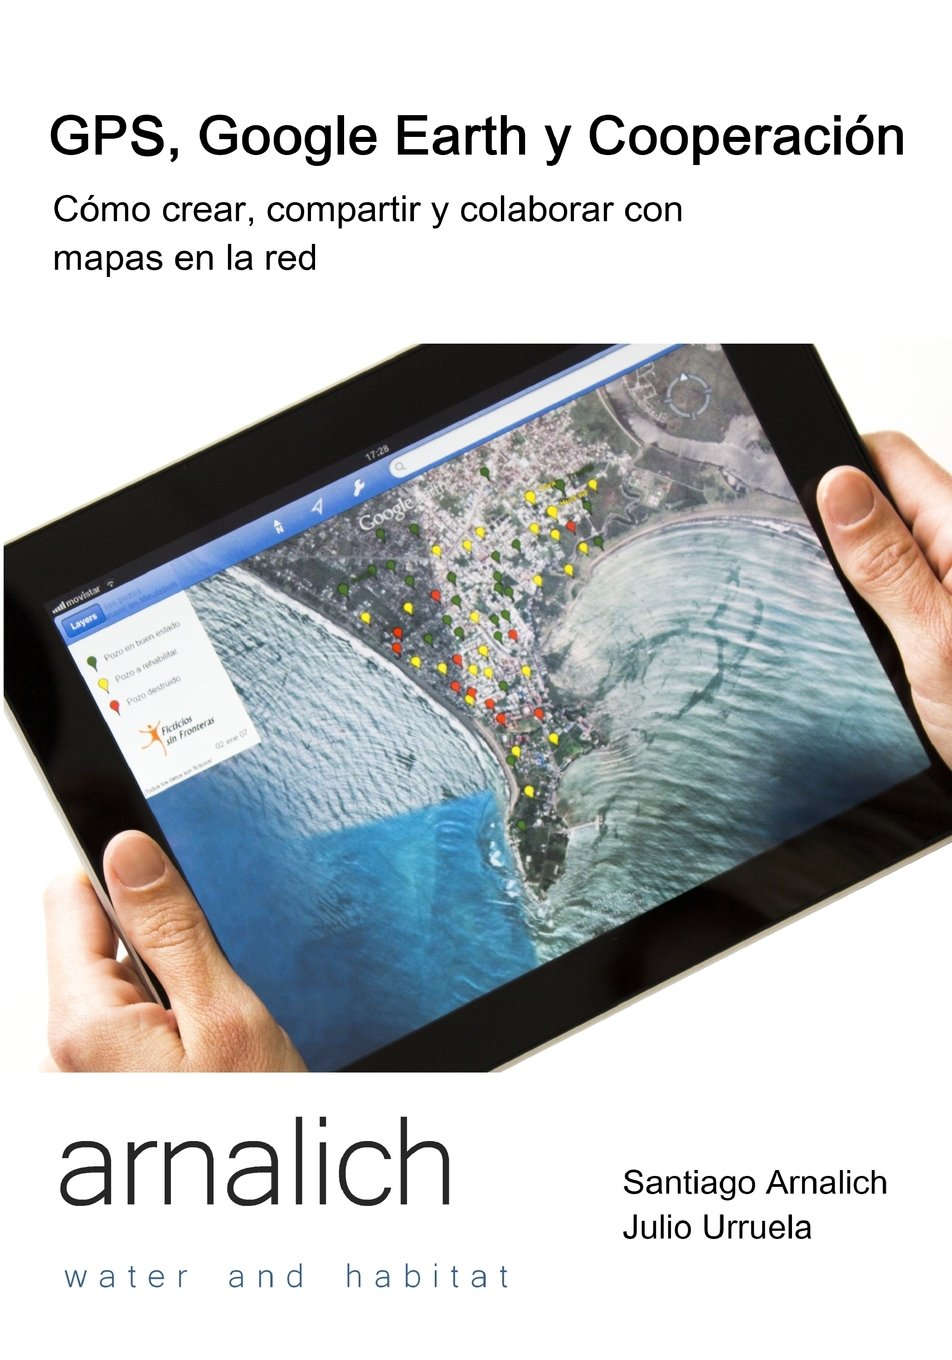 GPS y Google Earth en Cooperacion